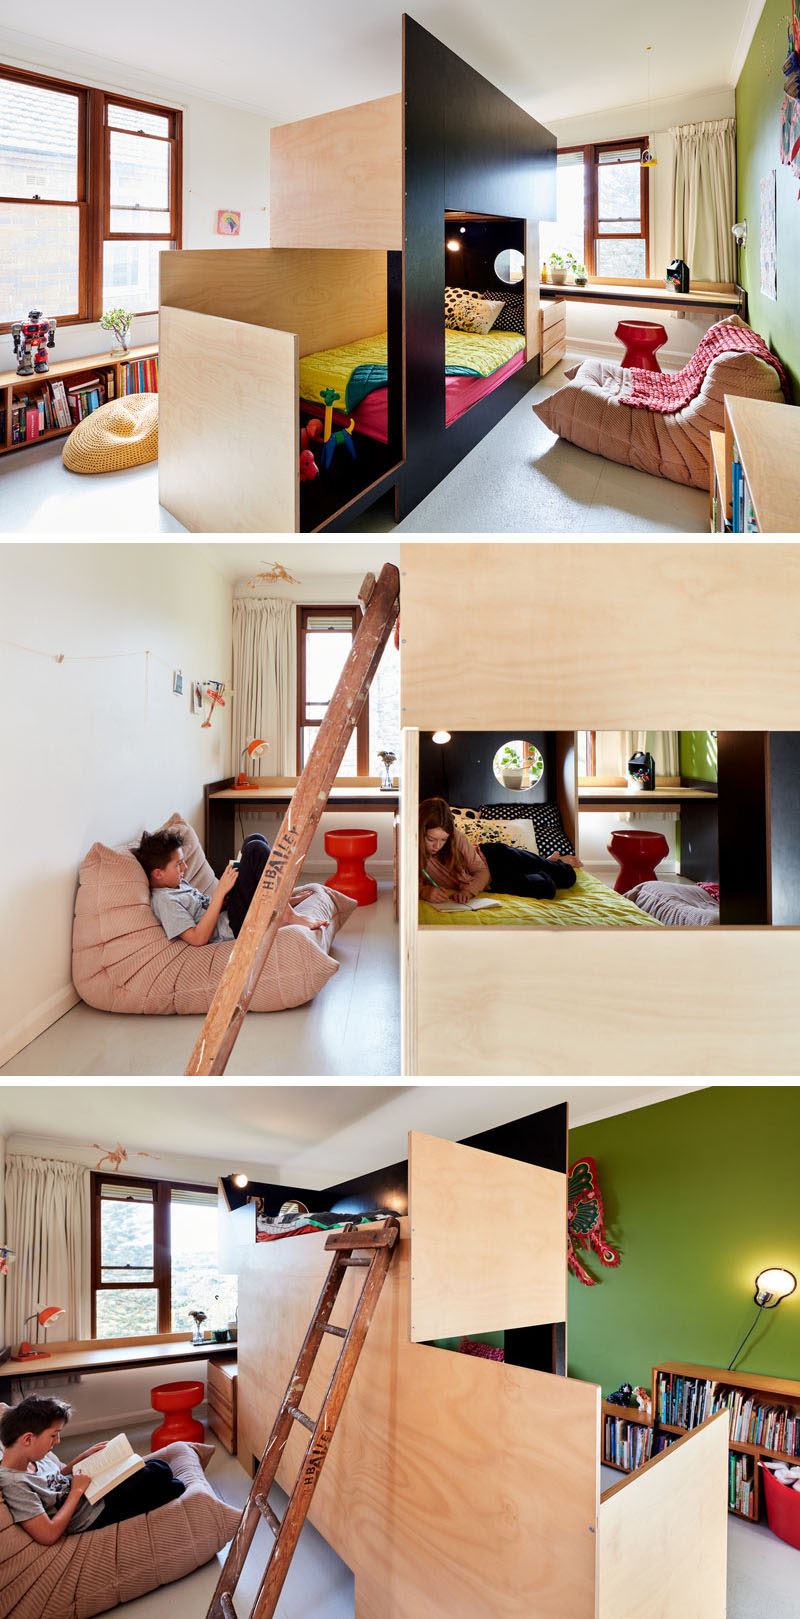 MAKE have collaborated with Tanguy Le Moing to create a bunk bed that splits the bedroom in two, creating a separate space for each child. #BunkBed #ModernBedroom #KidsBedroom